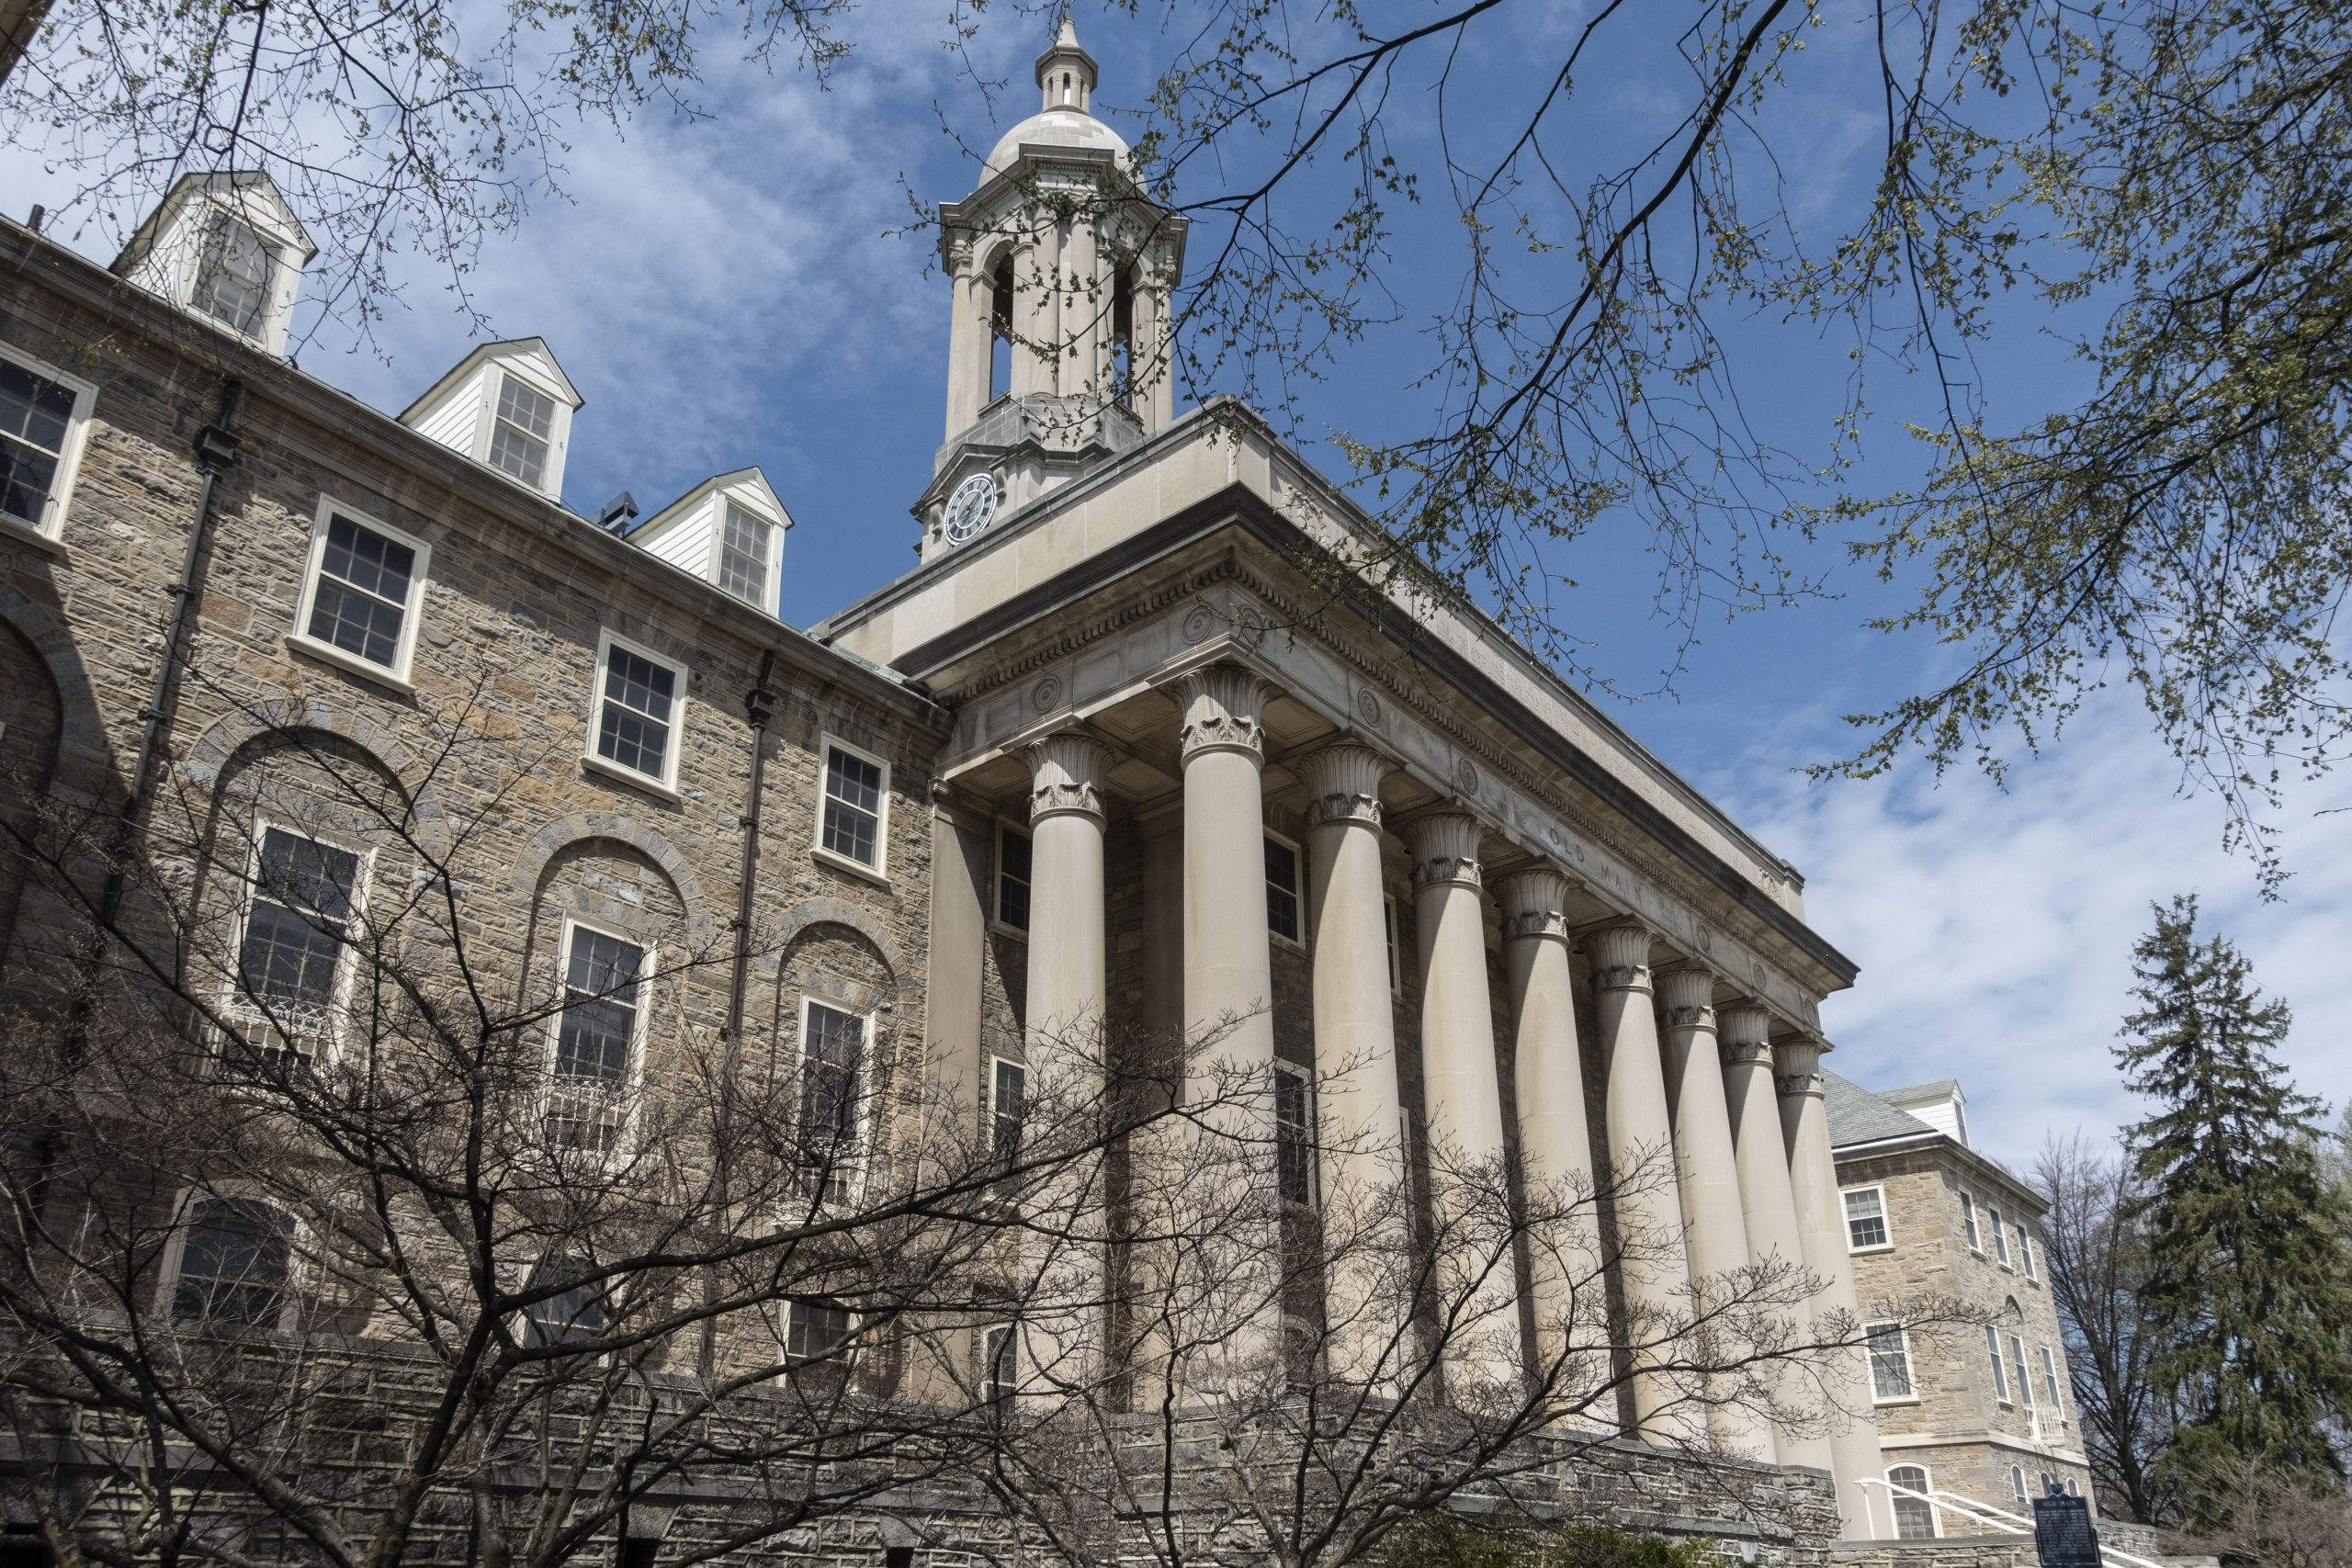 Reasons to Call State College, Pennsylvania Home